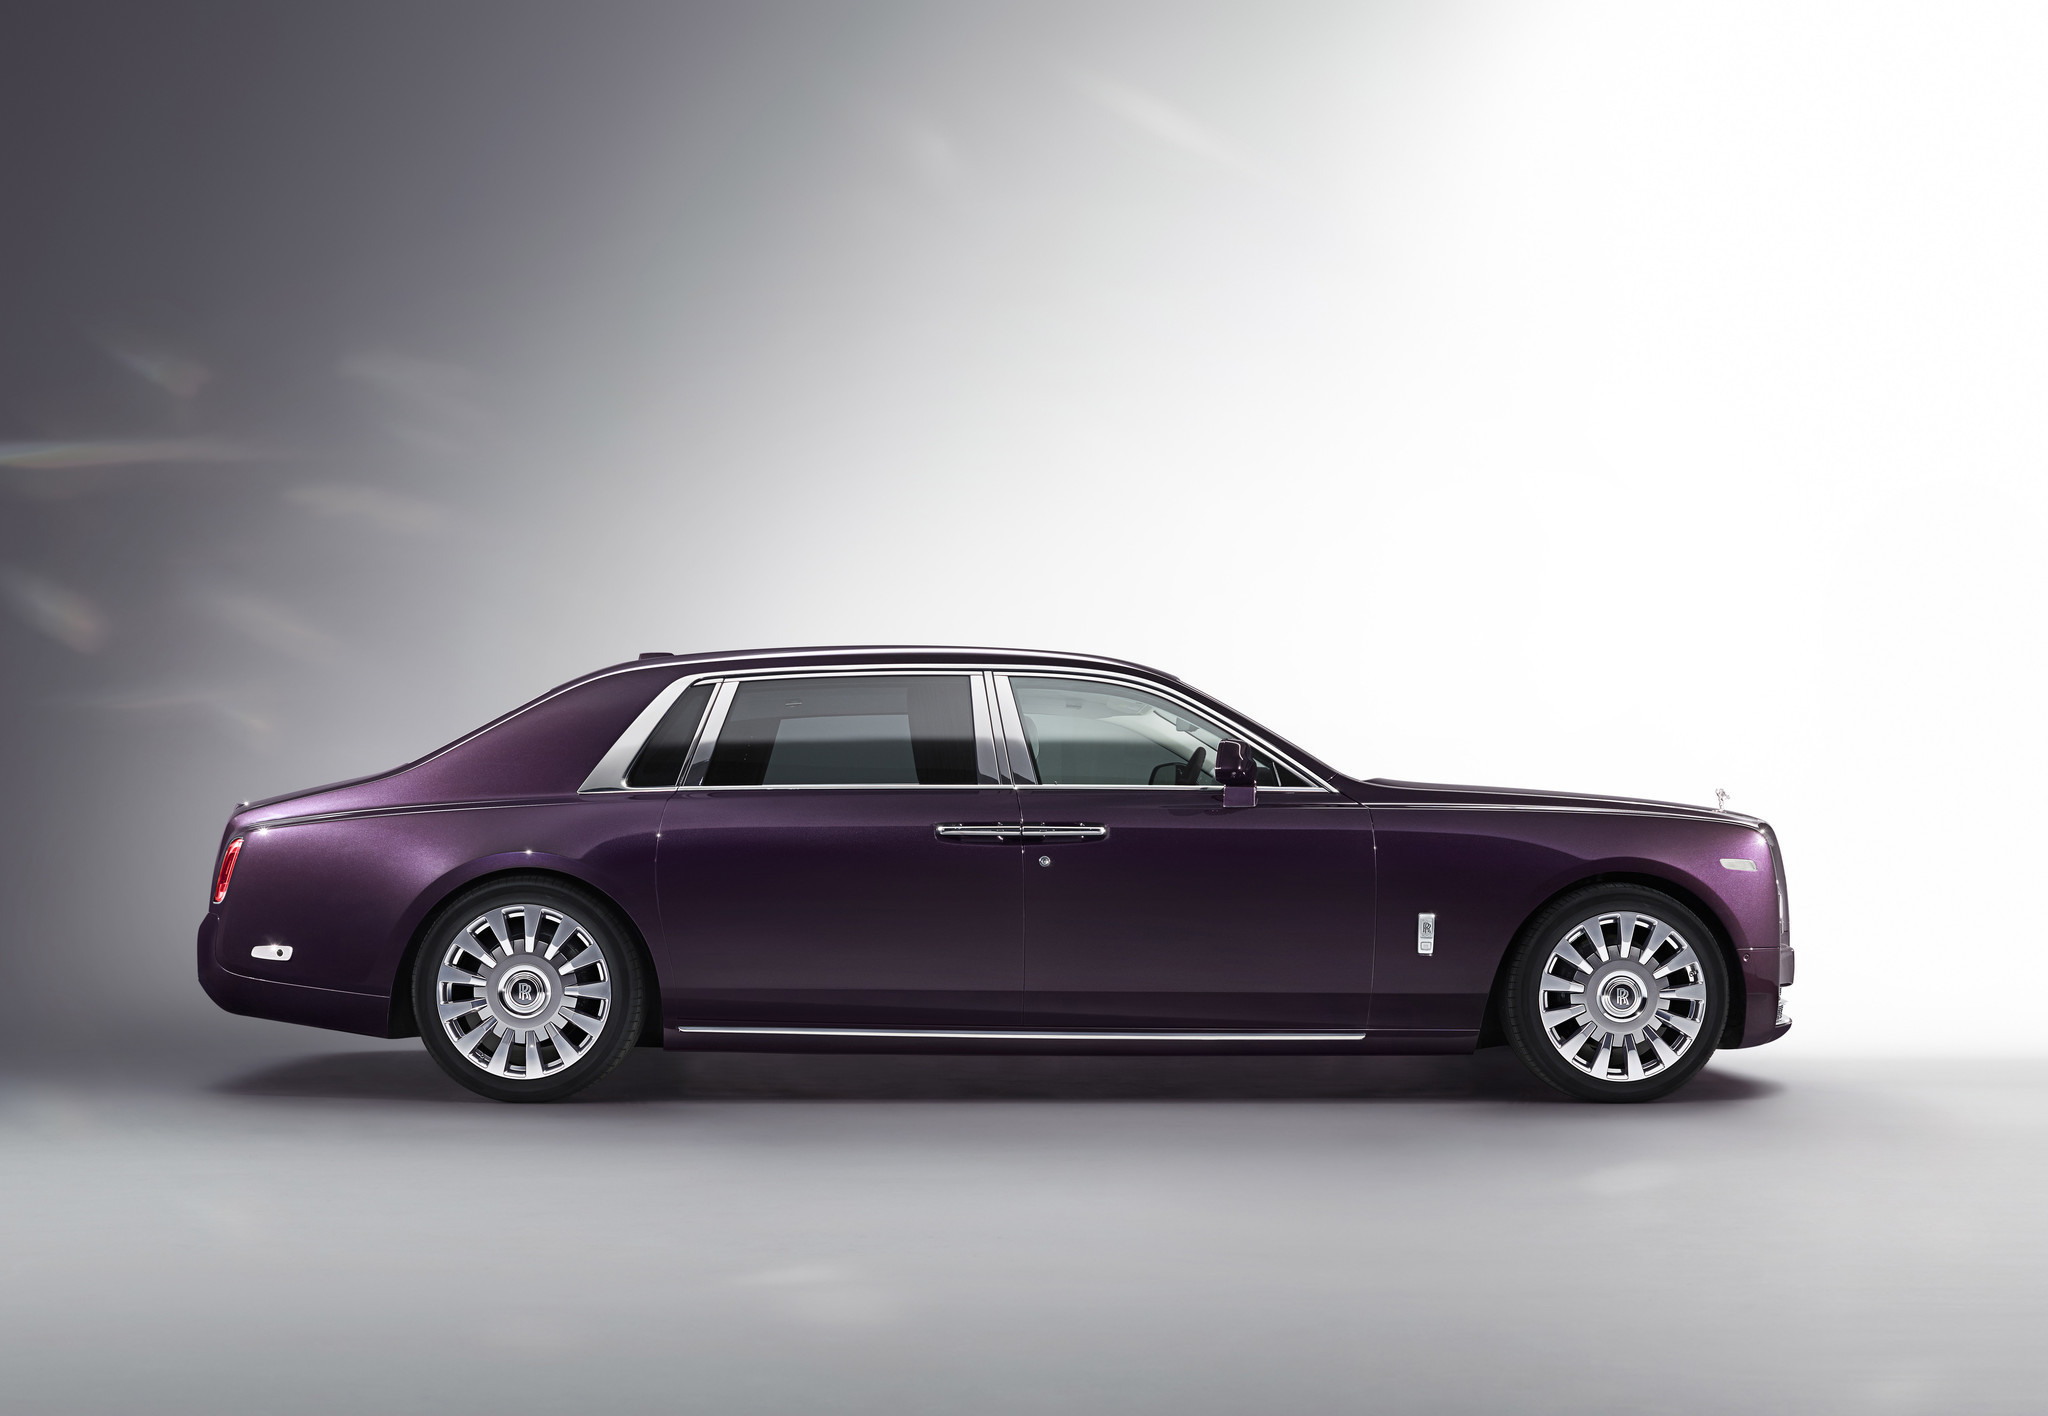 History Of The World S Most Luxurious Car Rolls Royce Phantom